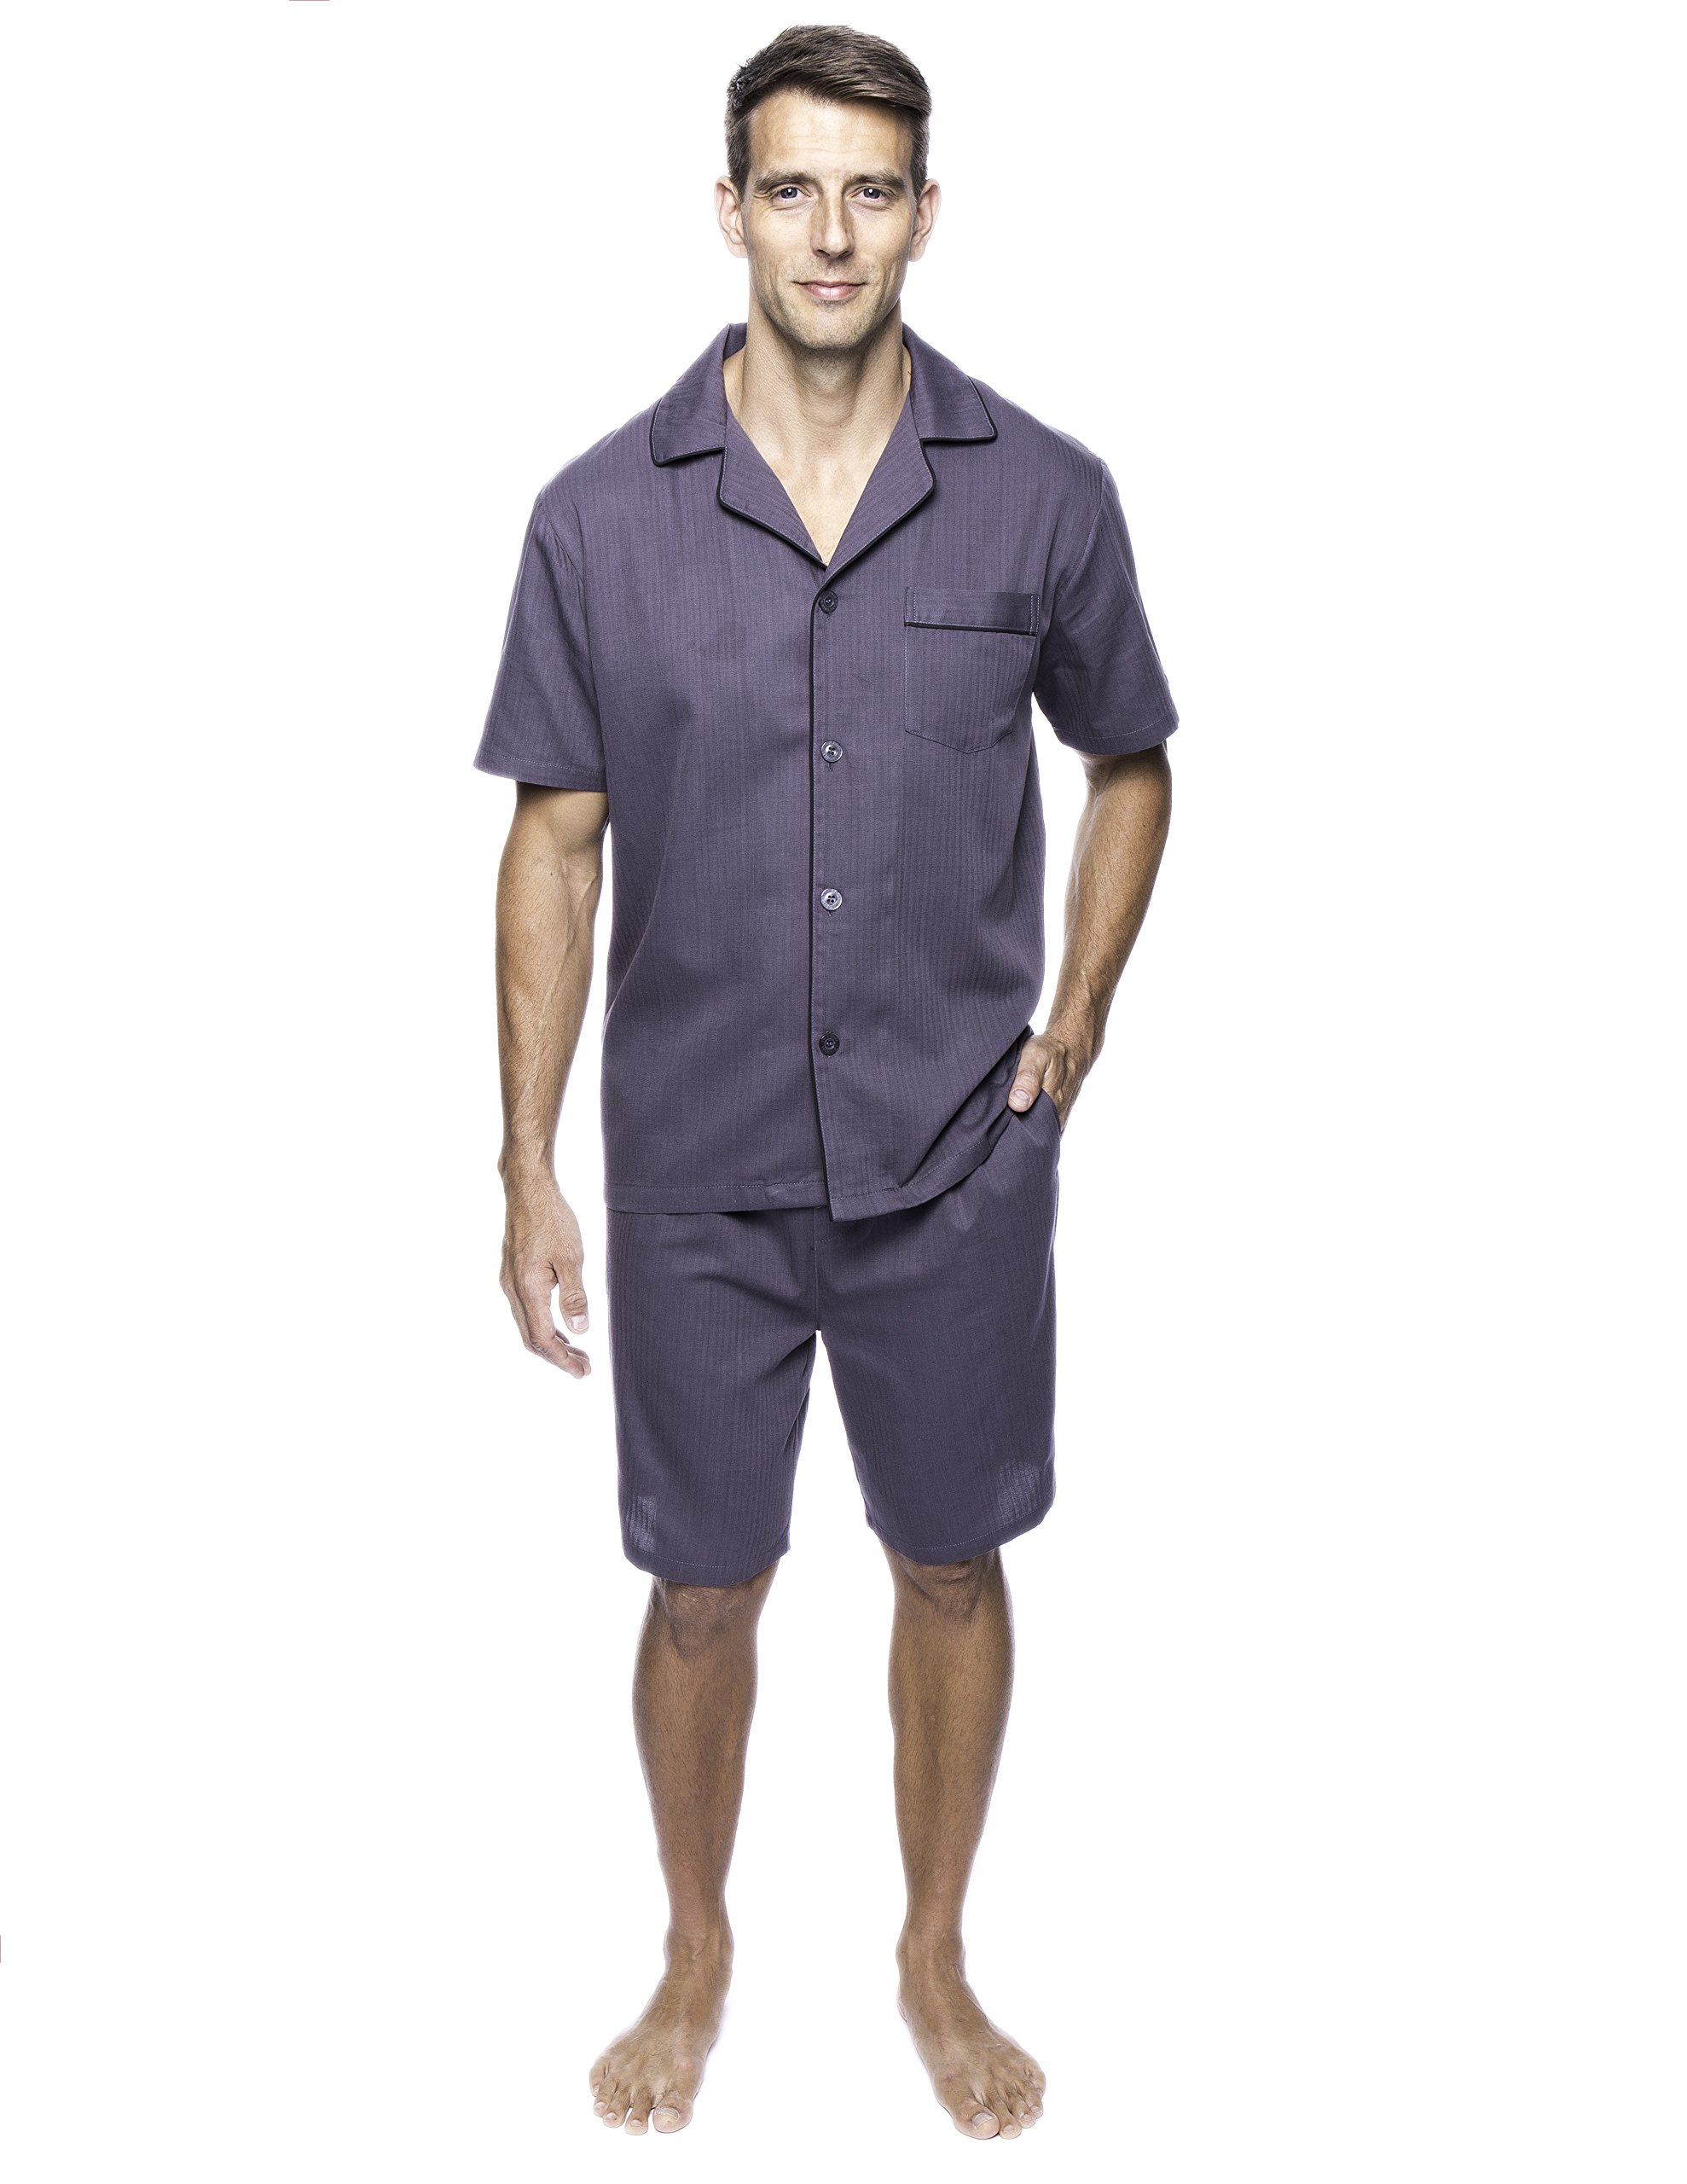 Twin Boat Men's Cotton Short Pajama Set - Herringbone Dark Grey - 2XL